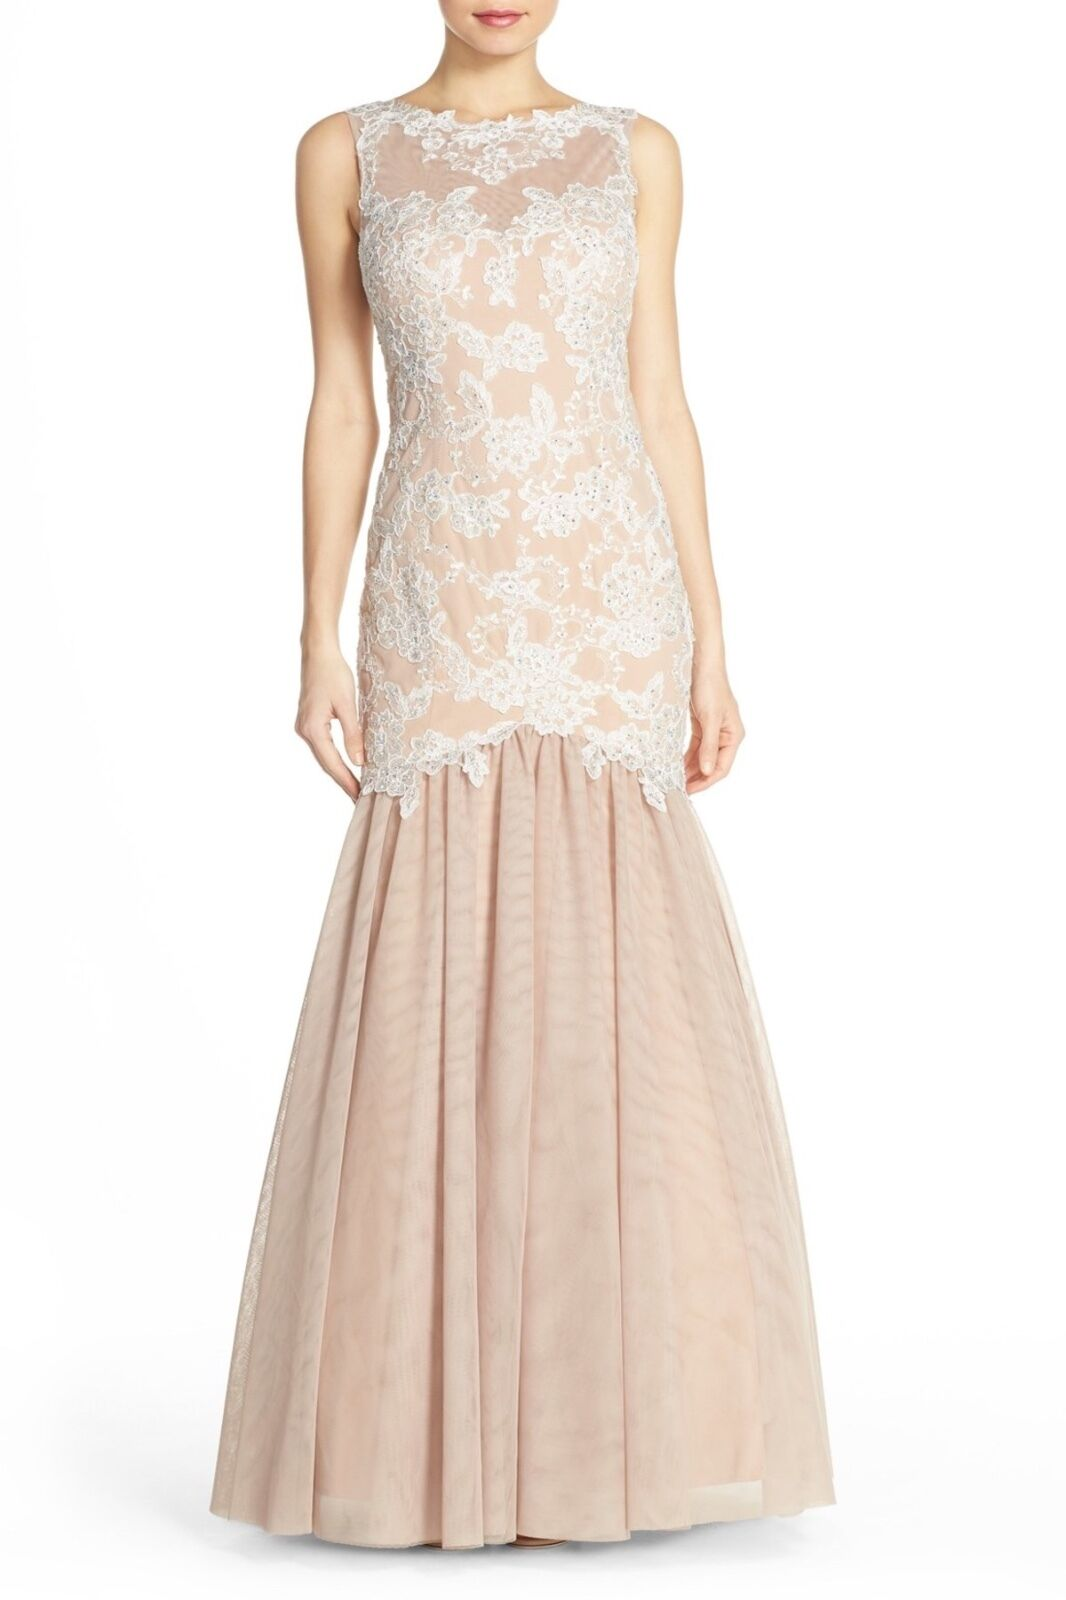 XSCAPE EMBELISSED MIXED MEDIA MERMAID IVORY  NUDE GOWN DRESS S16